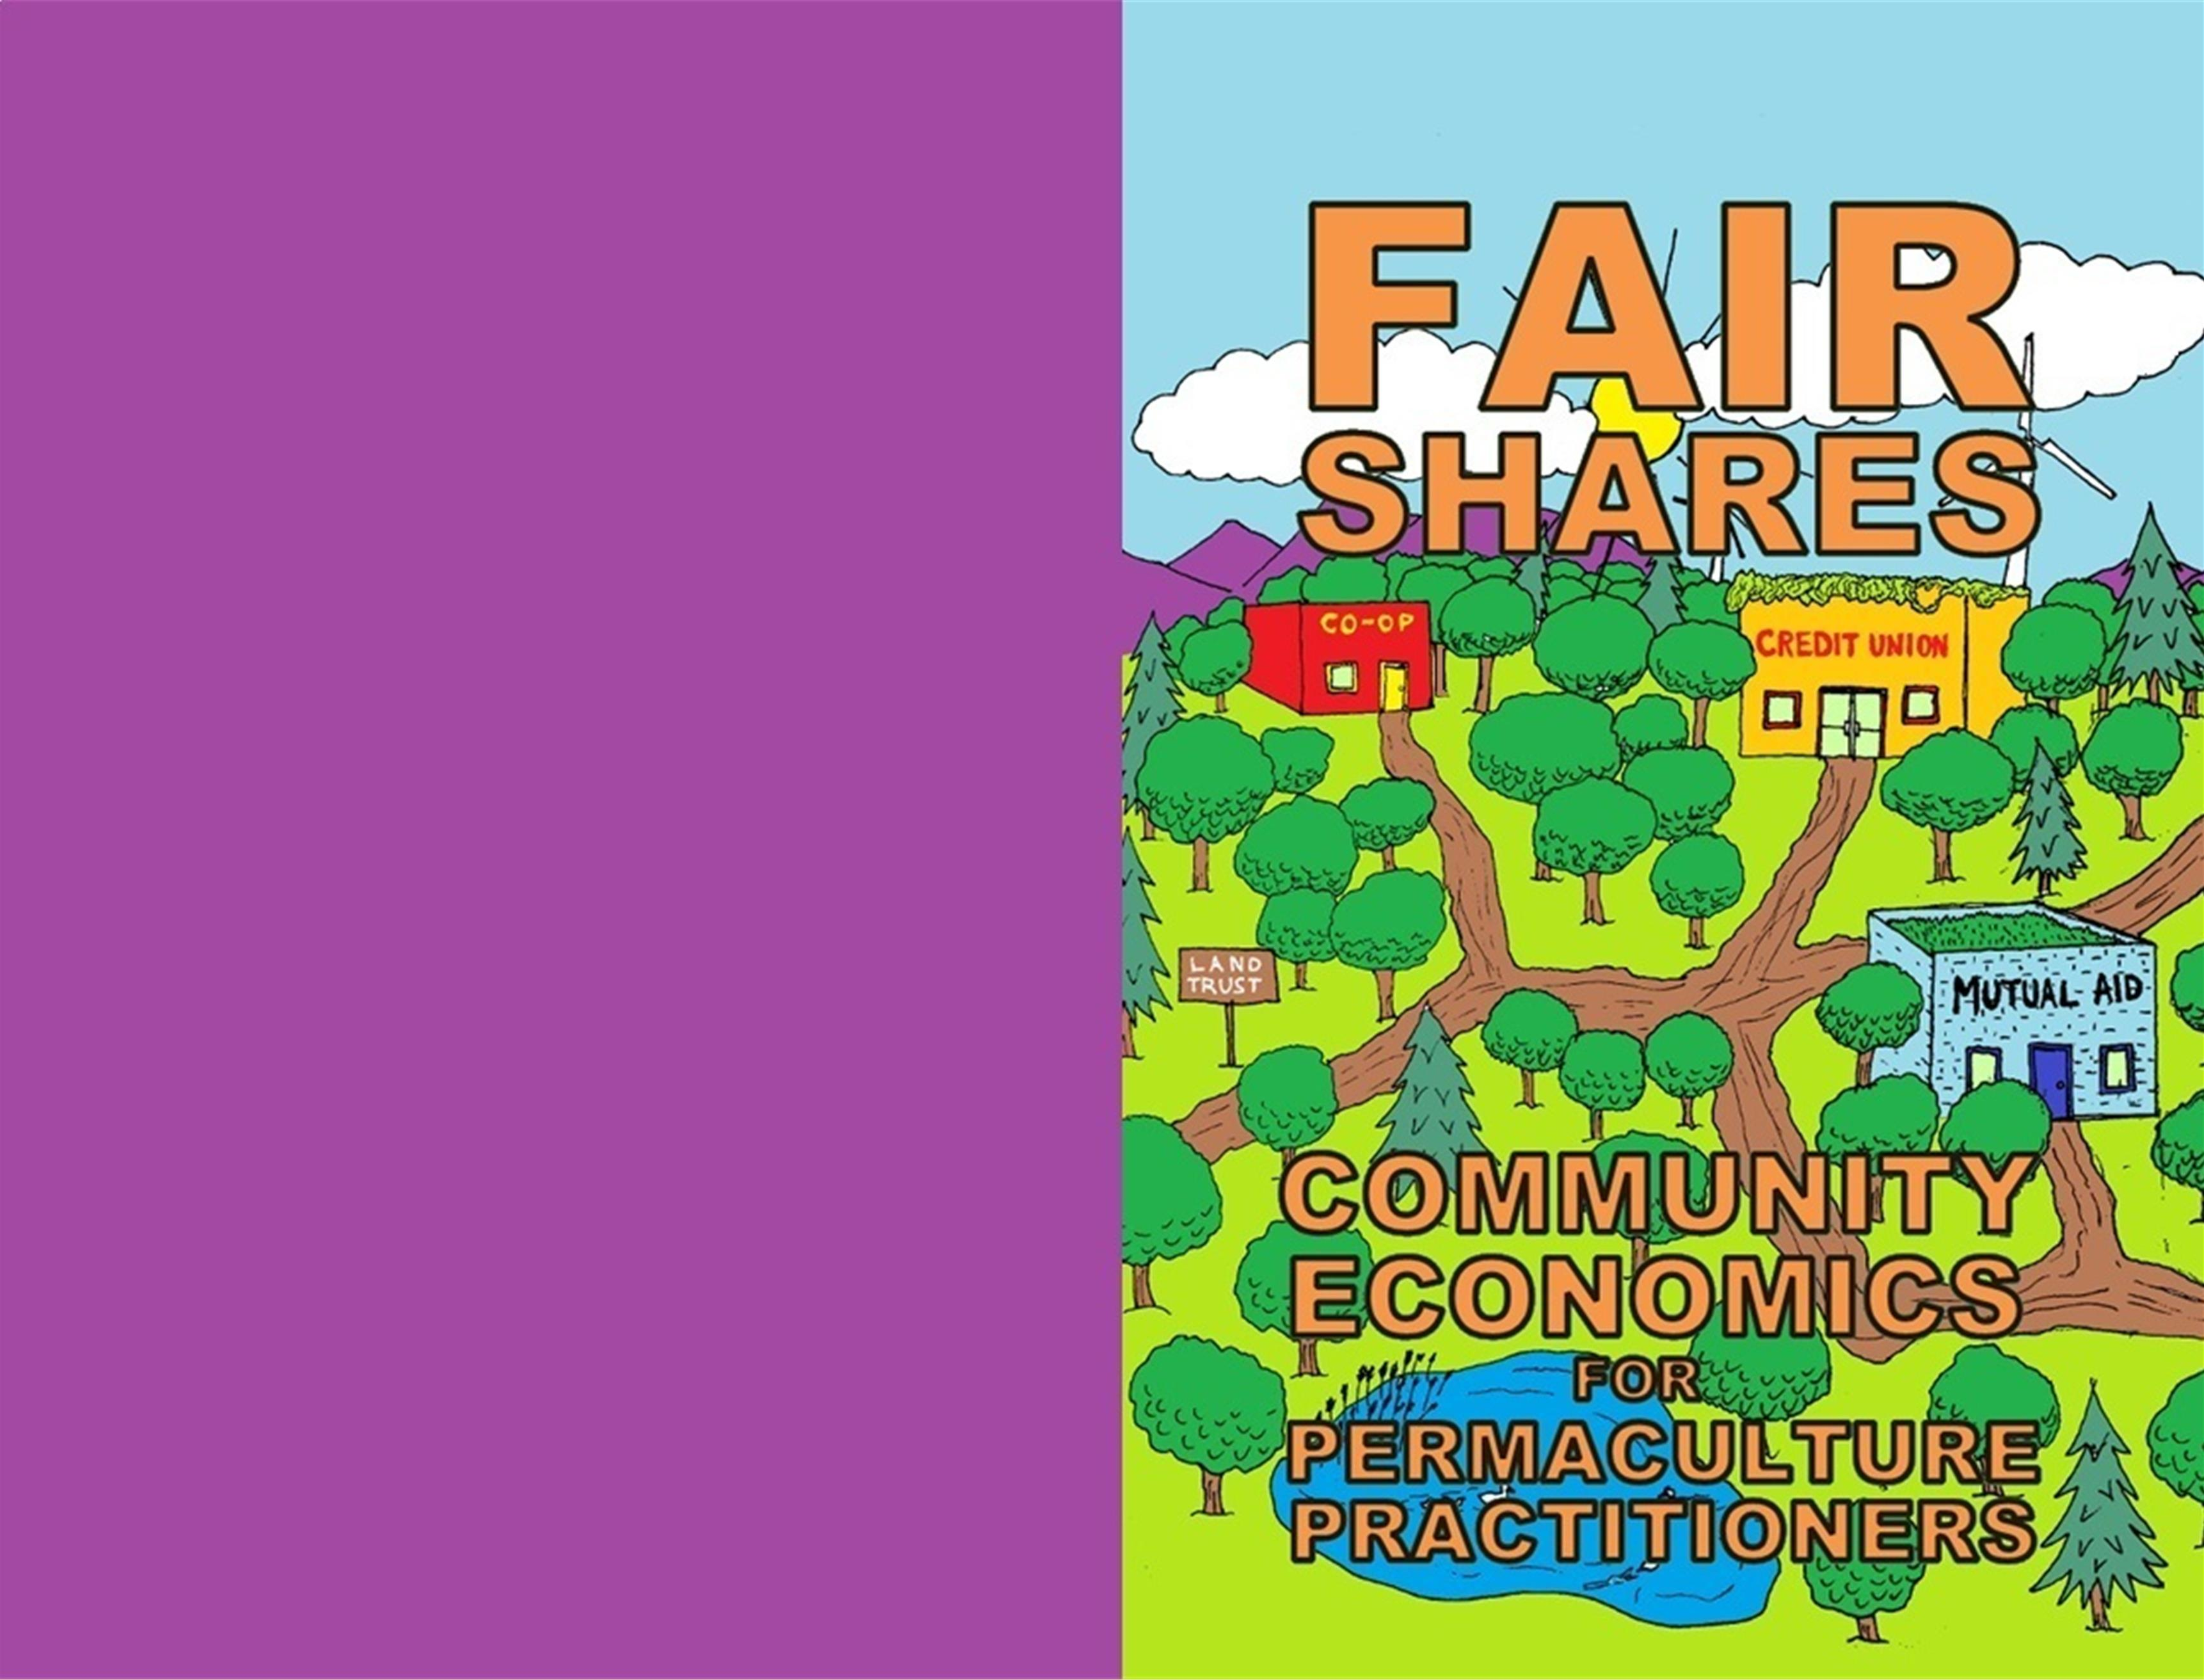 FAIR SHARES cover image